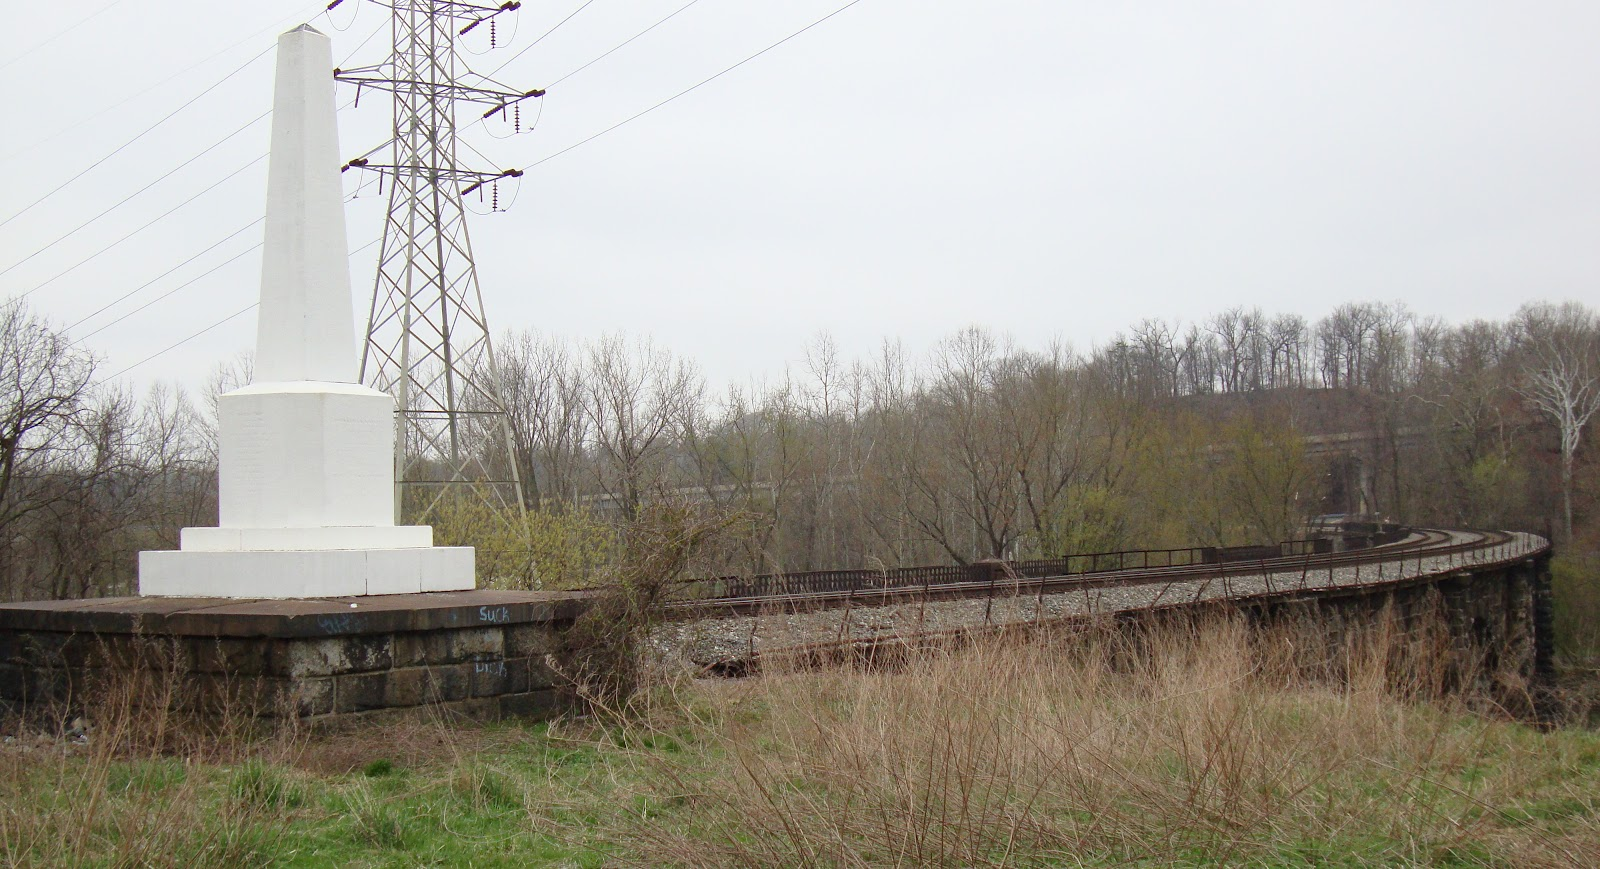 The viaduct's Builder's Monument has been encased to protect it from vandals and the elements.